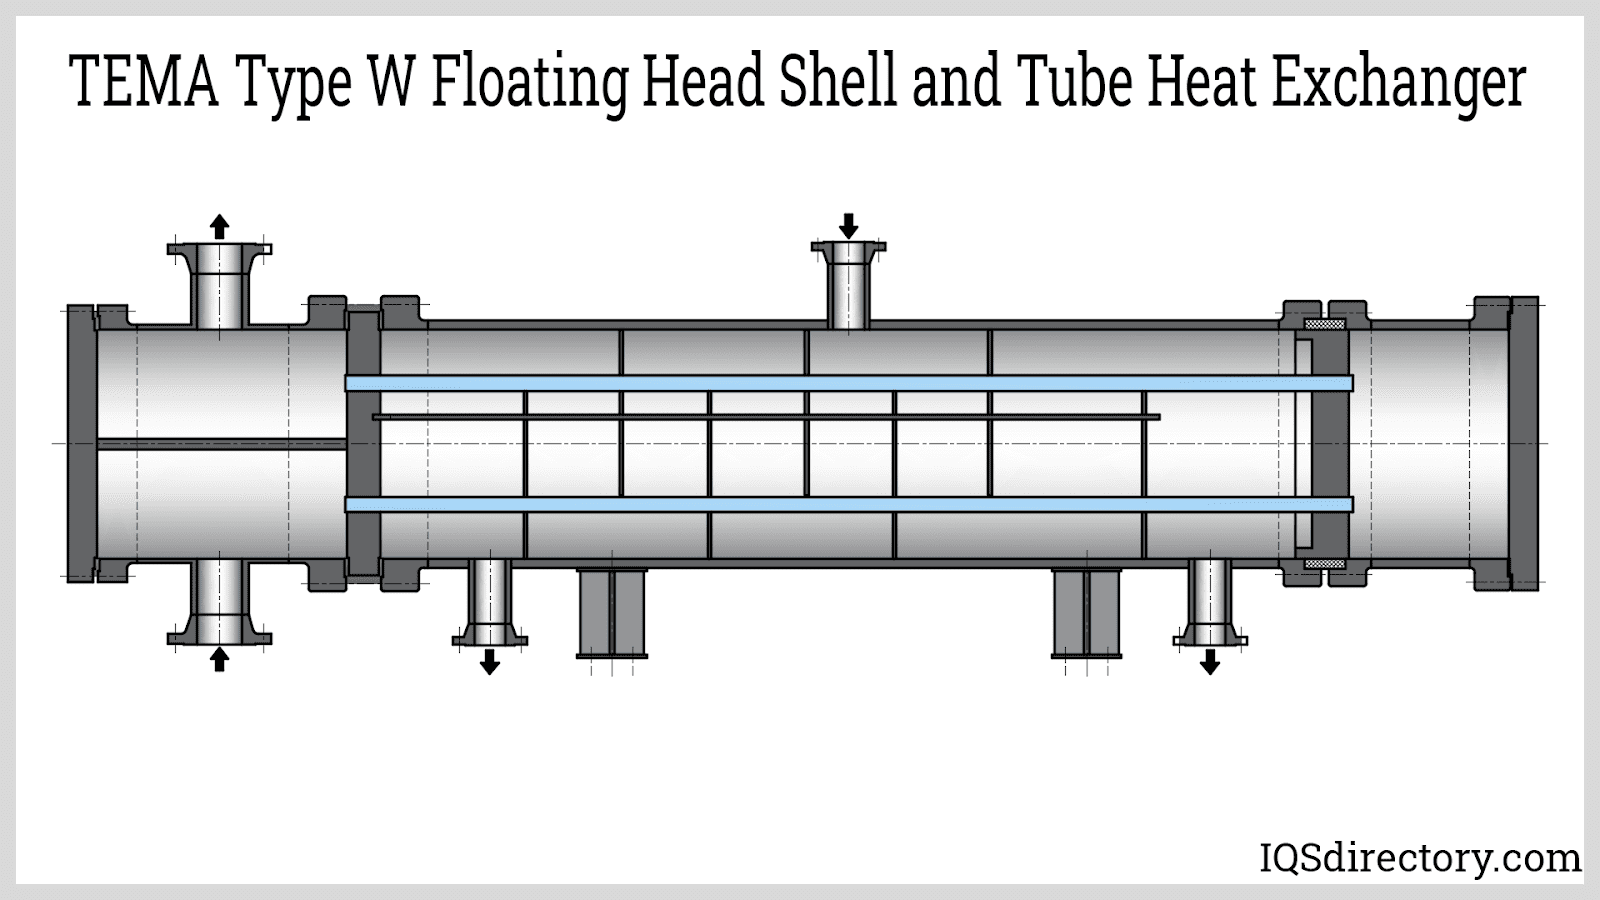 TEMA Type W Floating Head Shell and Tube Heat Exchanger